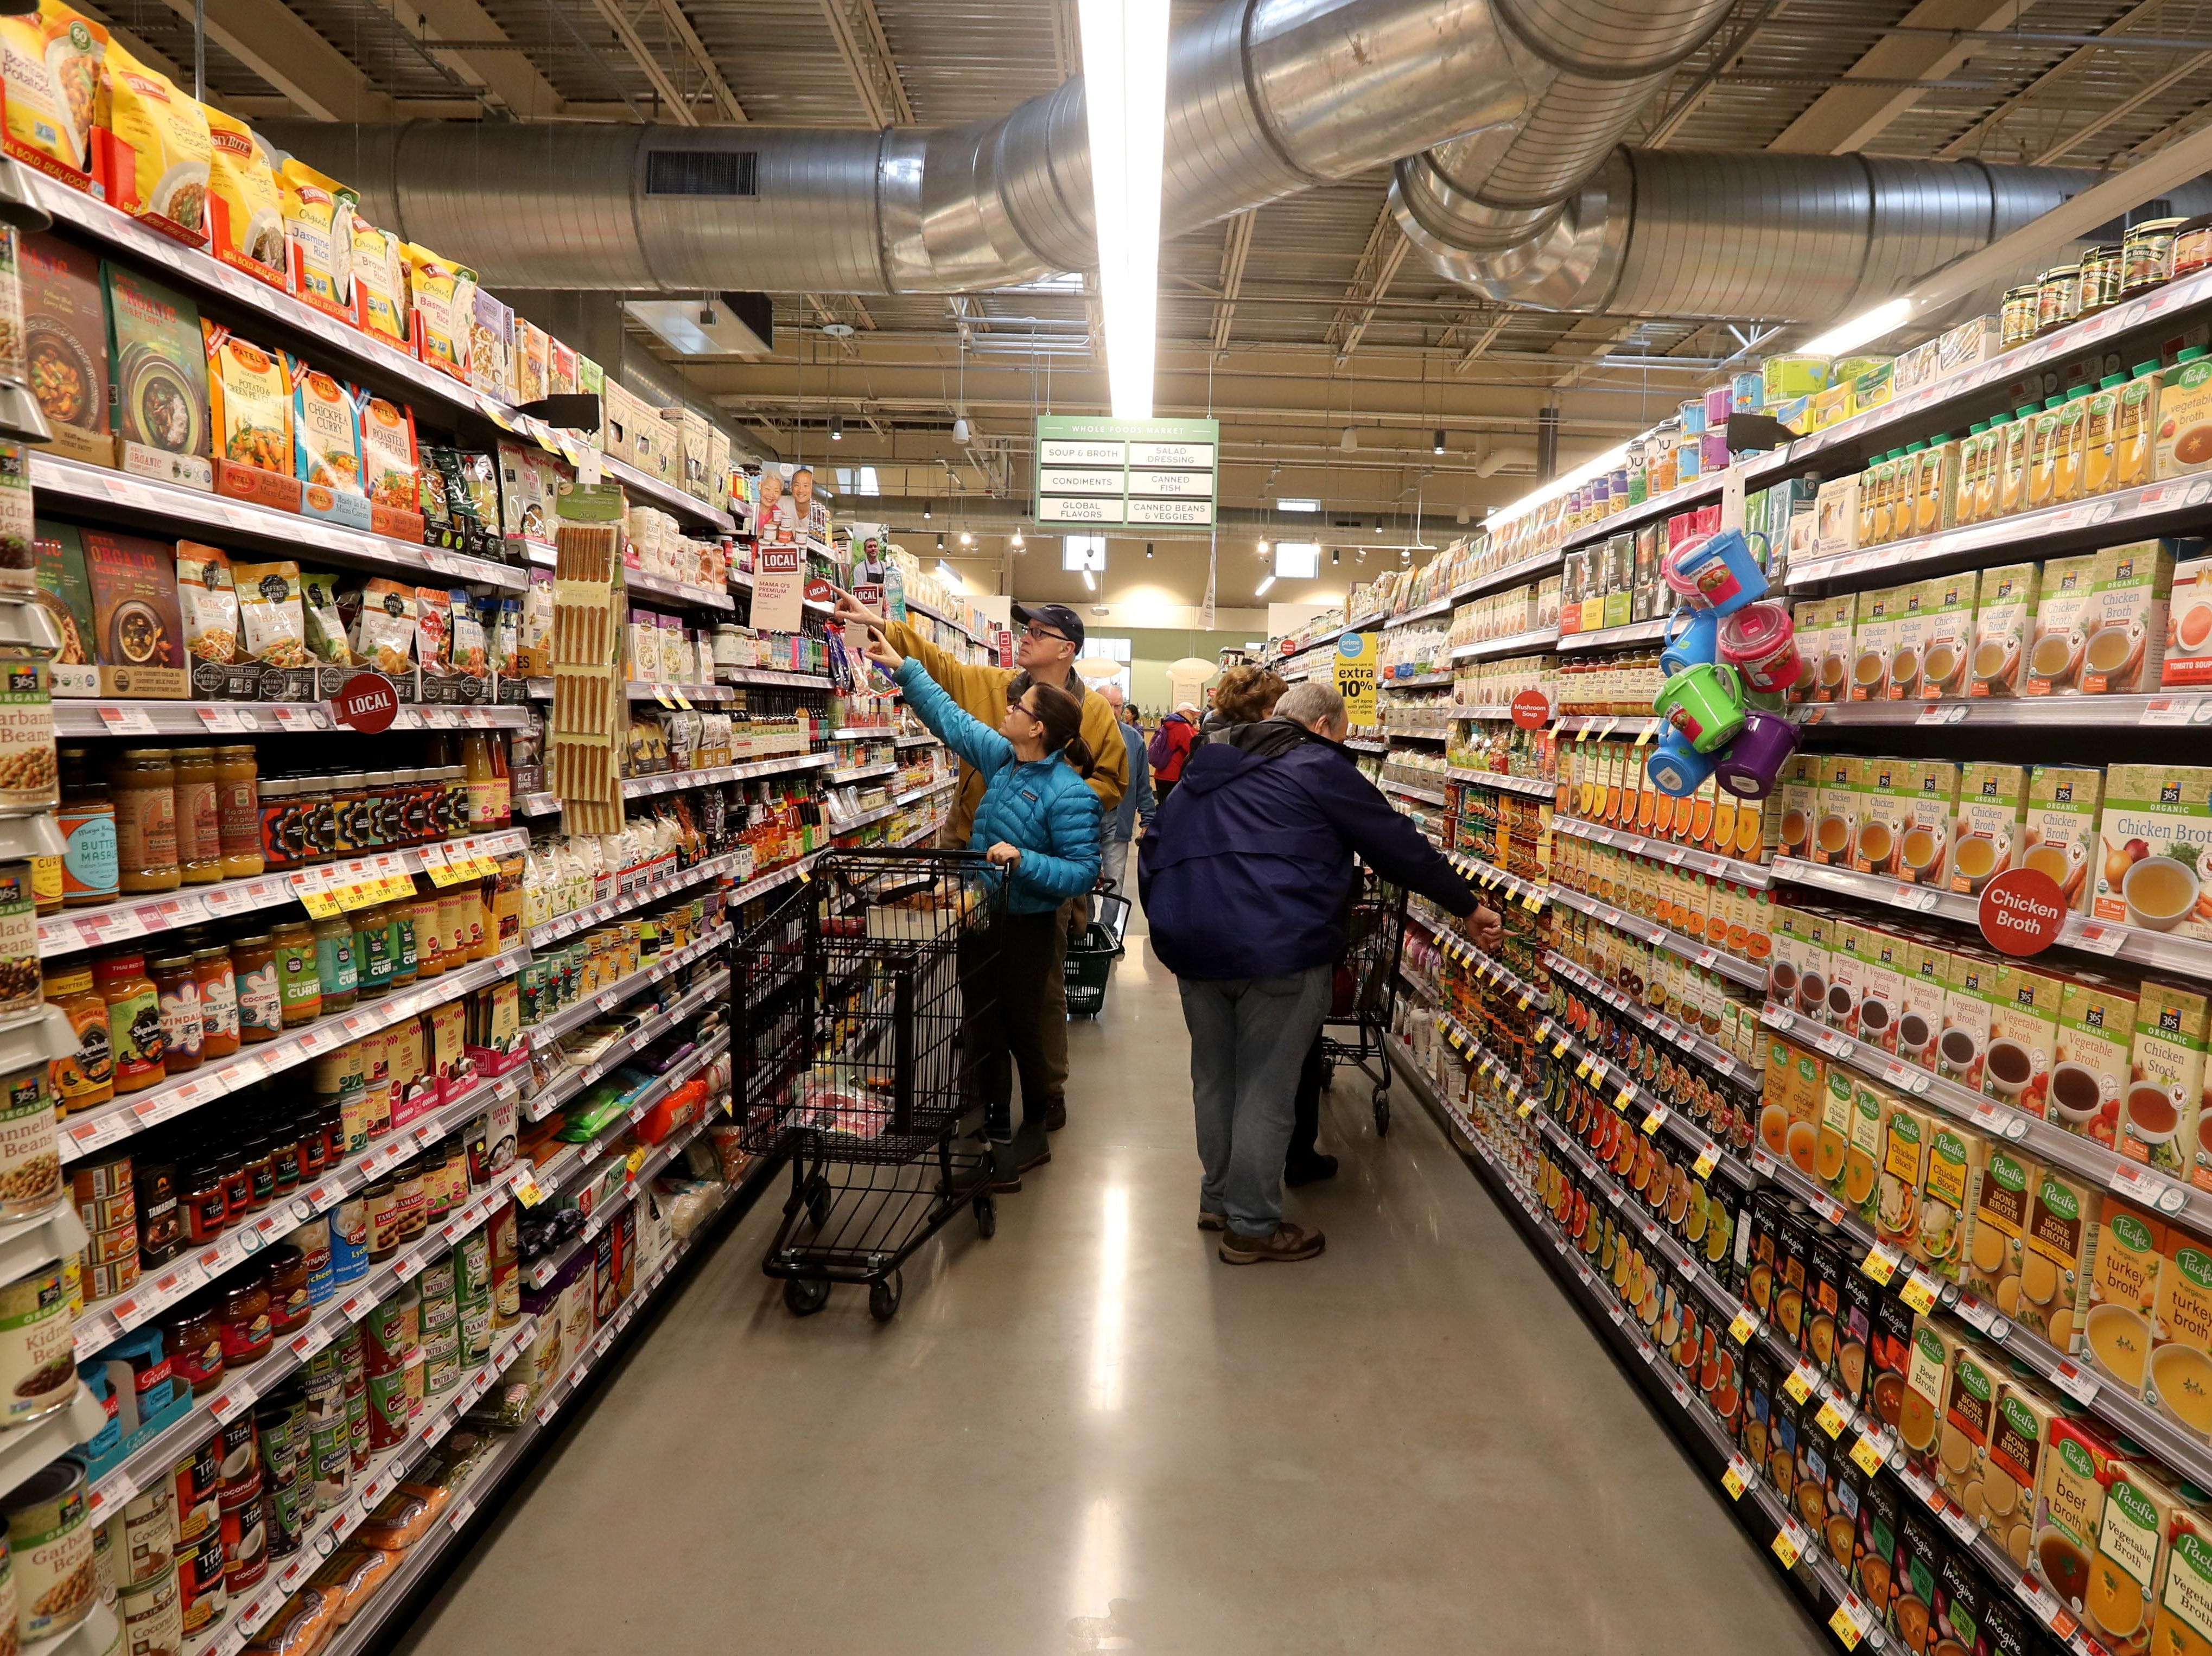 Shoppers make their way through the aisles at the new Whole Foods in Chappaqua Dec. 15, 2018. The 40,000 square foot store opened to shoppers on the site of the formers Readers Digest headquarters. The New Castle Town Board and Planning Board approved a temporary traffic plan for the Route 117-Roaring Brook Road intersection that allowed the store to open.